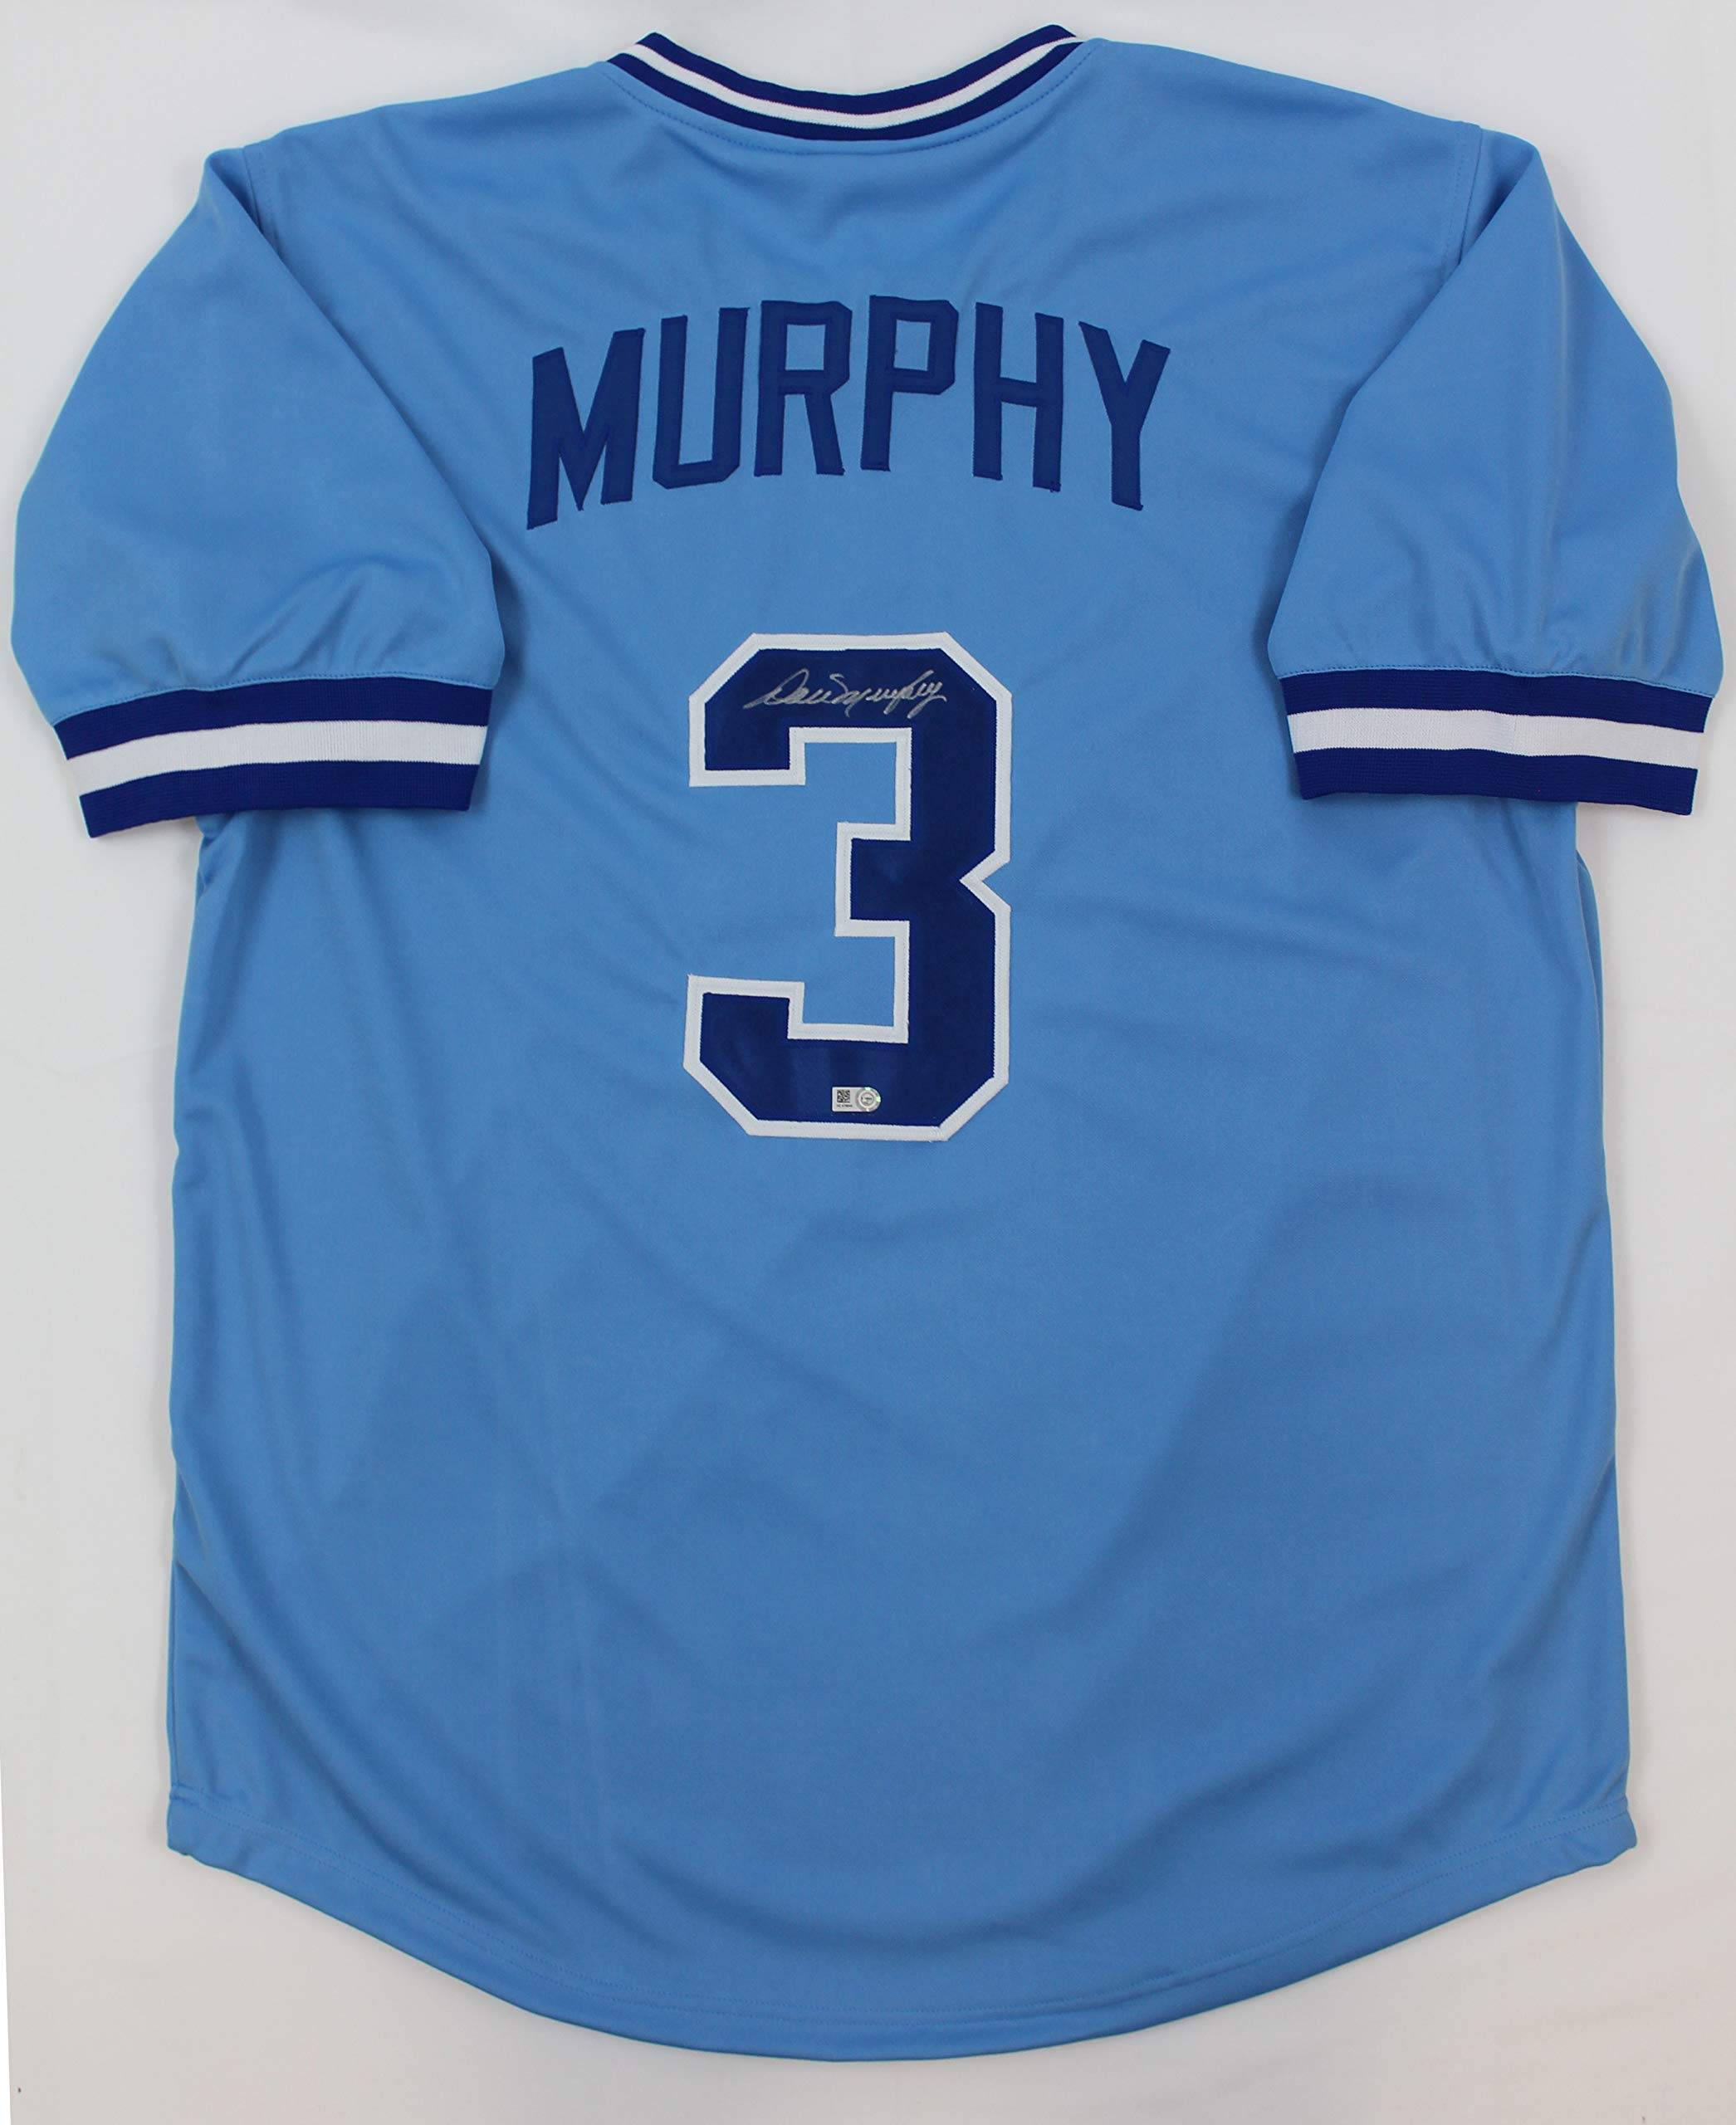 Dale Murphy Autographed Blue Atlanta Braves Jersey Hand Signed By Dale Murphy and Certified Authentic by MLB